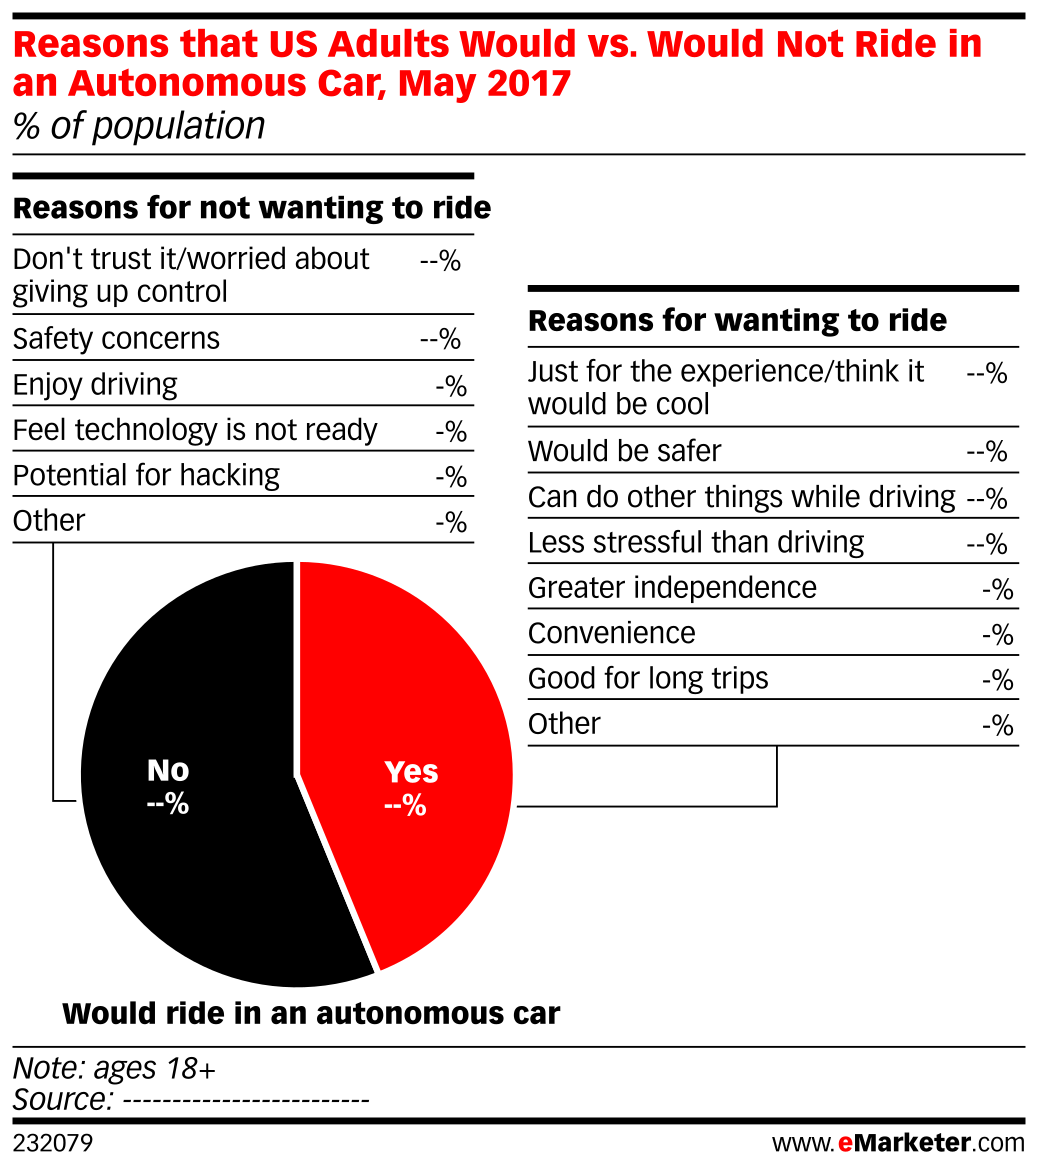 Reasons that US Adults Would vs. Would Not Ride in an Autonomous Car, May 2017 (% of population)